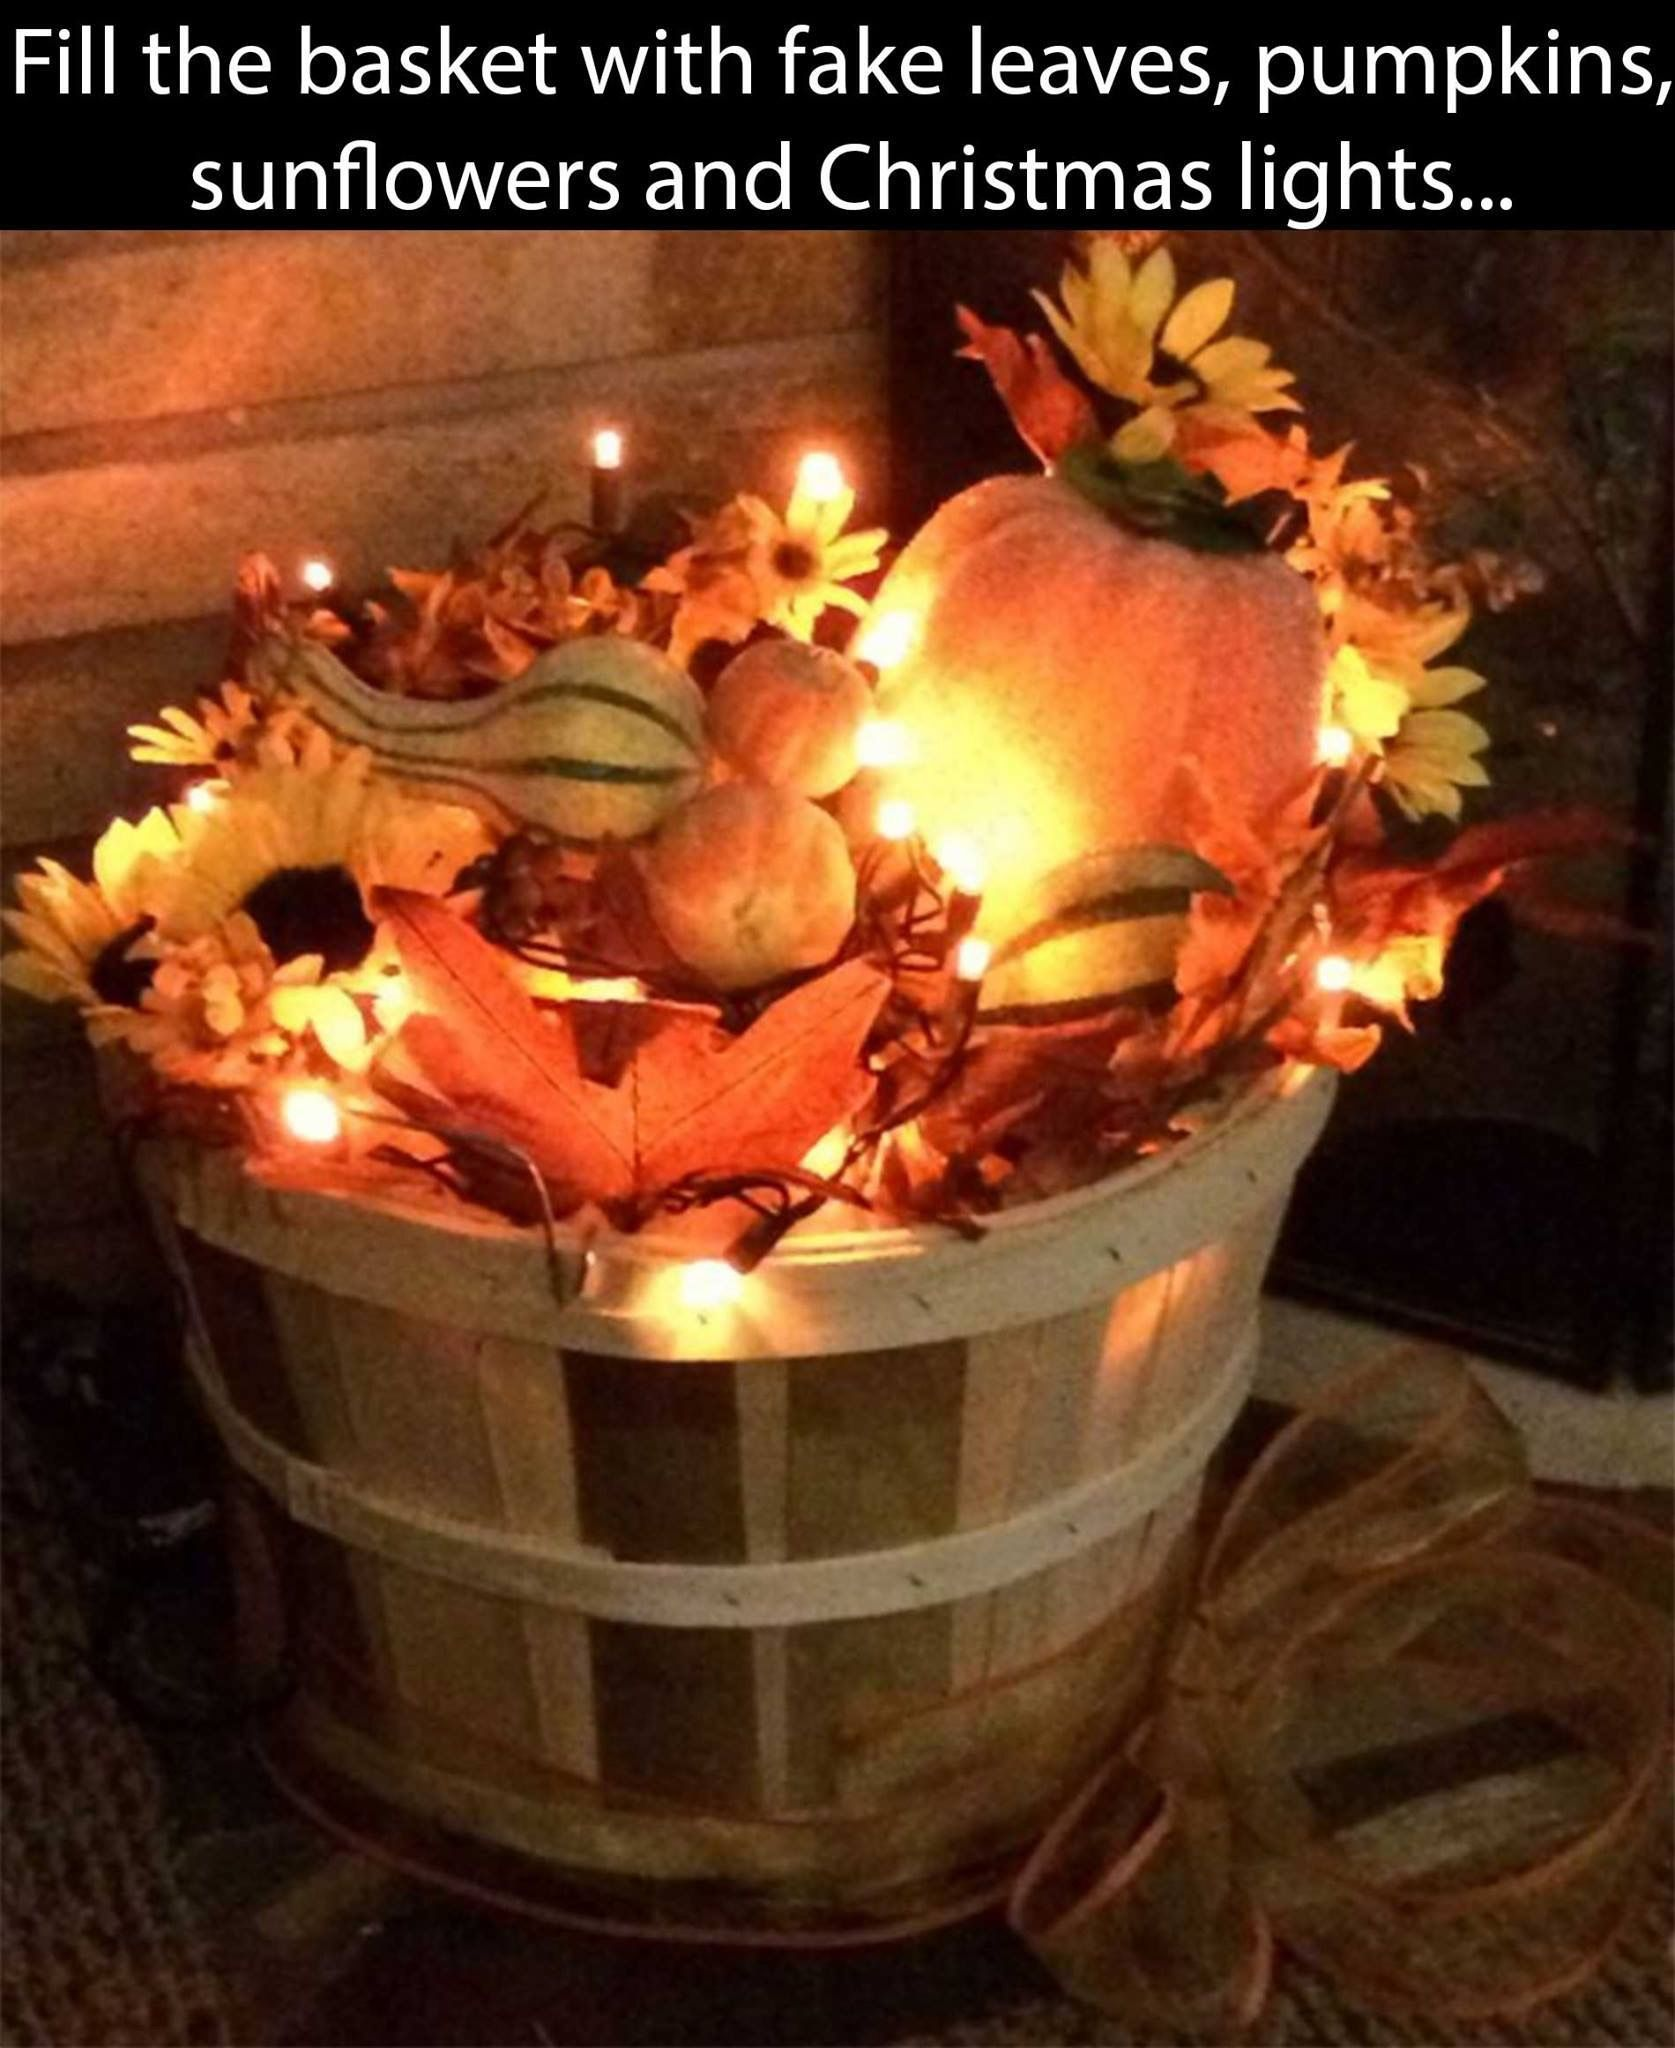 Perfect for the holidays including Halloween!  (board is part of the Contest) The lights bring out the leaves, pumpkins, etc. Perfect to go with Halloween and Fall.